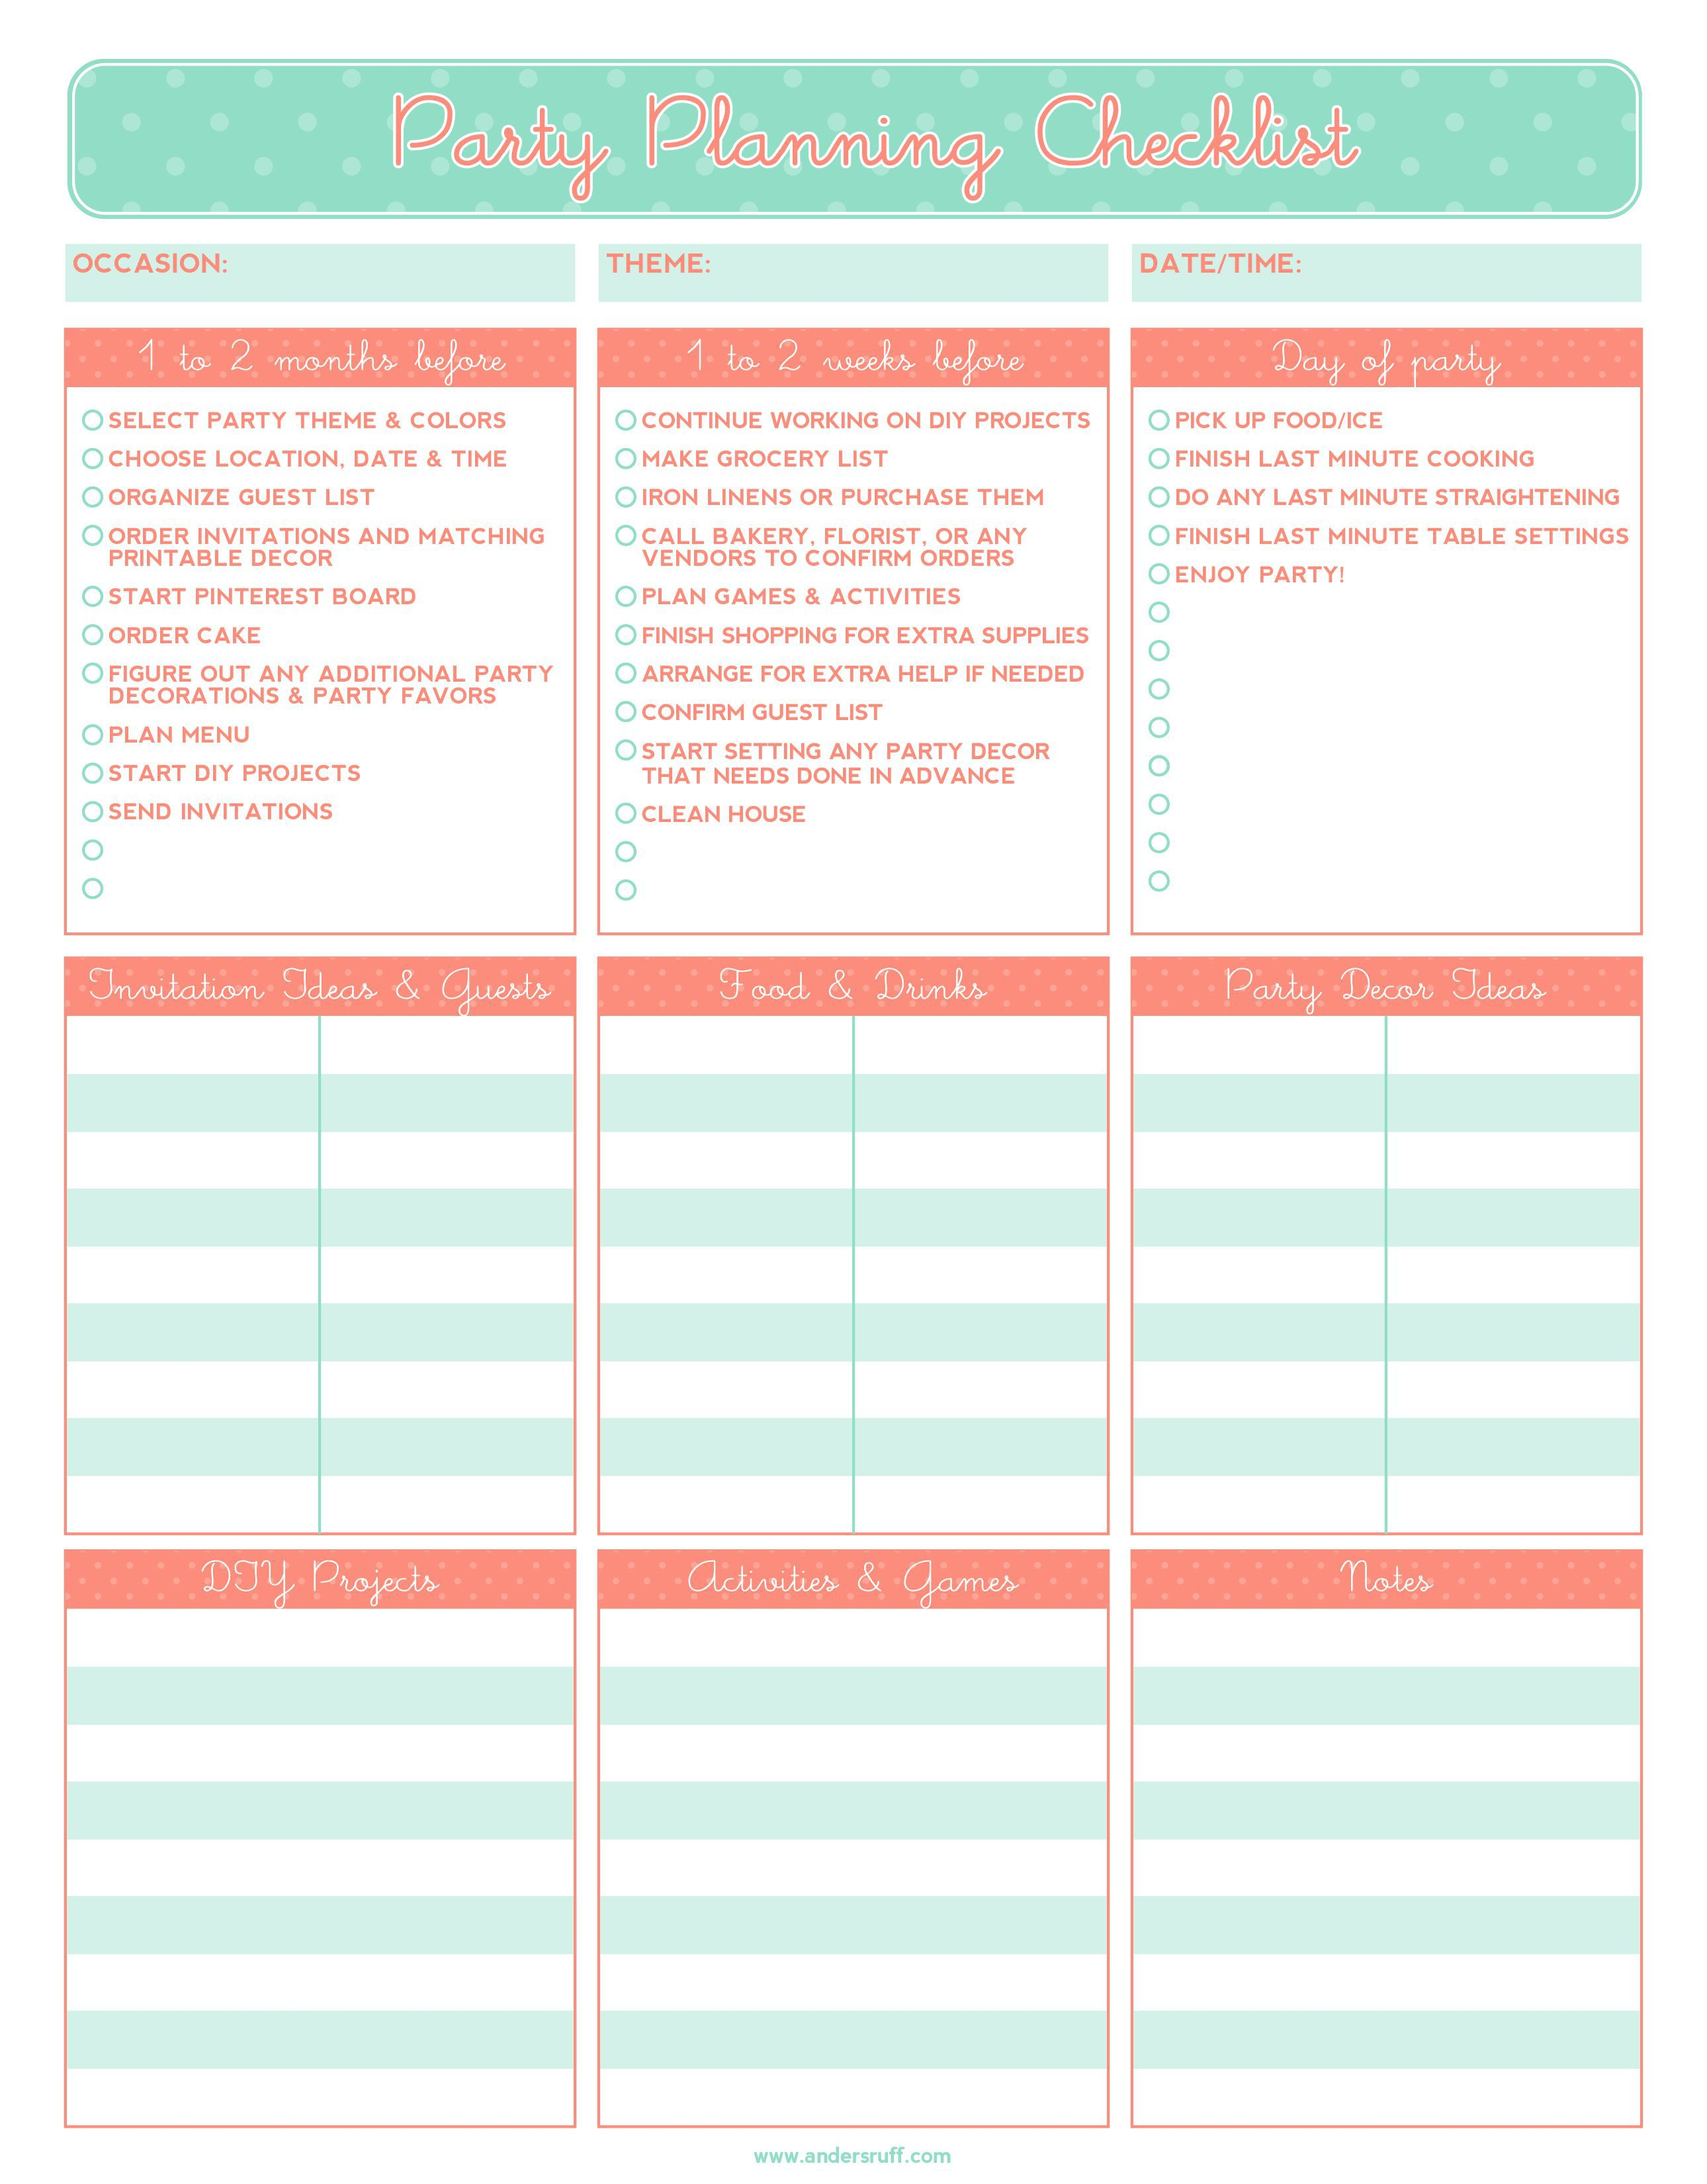 003 Exceptional Party Plan Checklist Template High Resolution  Planning Free Graduation BirthdayFull